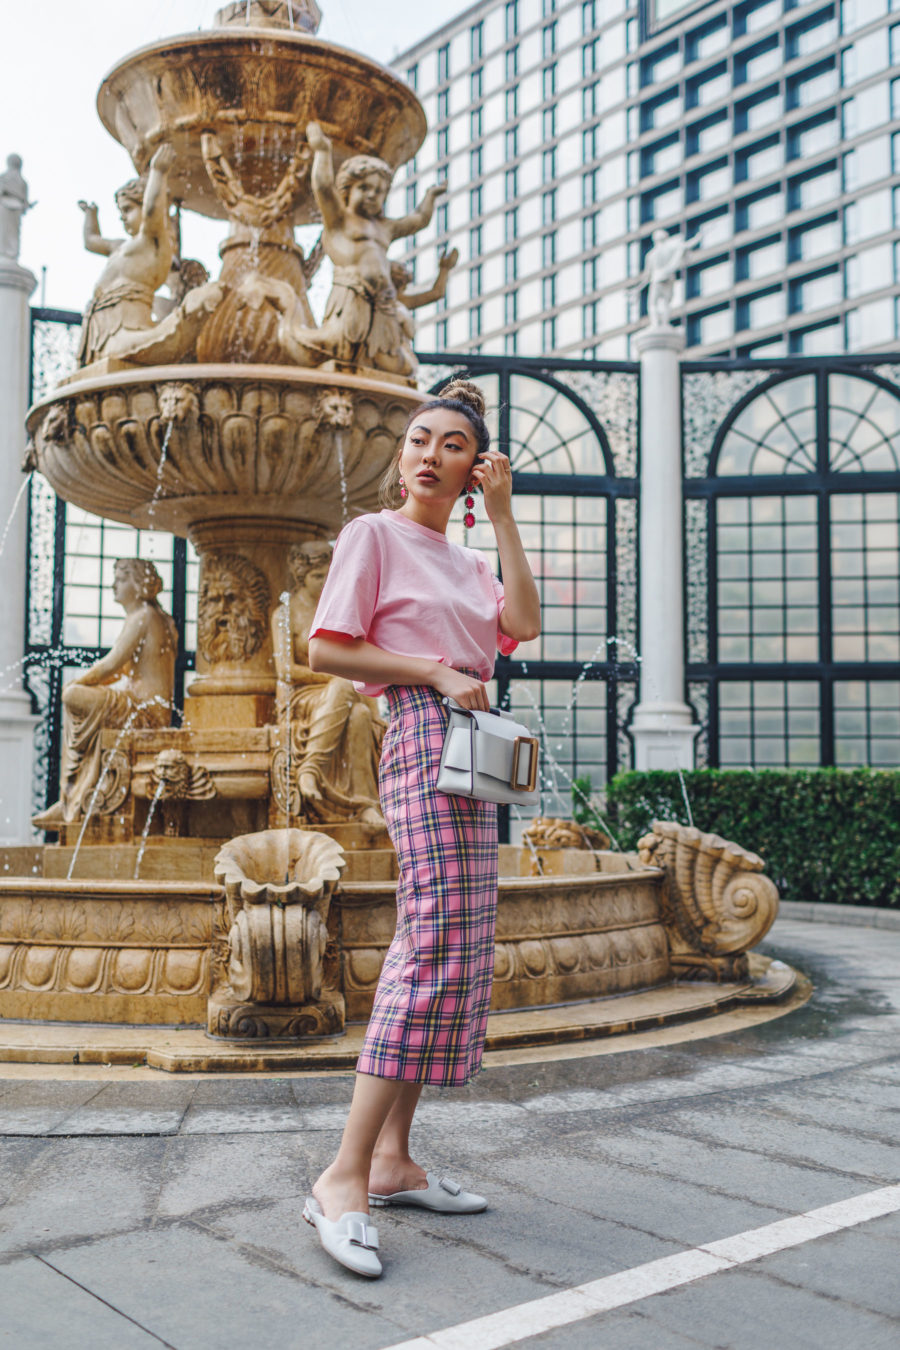 5 Best Colors to Wear This Summer & Stand Out - Chic travel outfits, pink plaid skirt, pink monochrome outfit, summer travel outfits // Notjessfashion.com